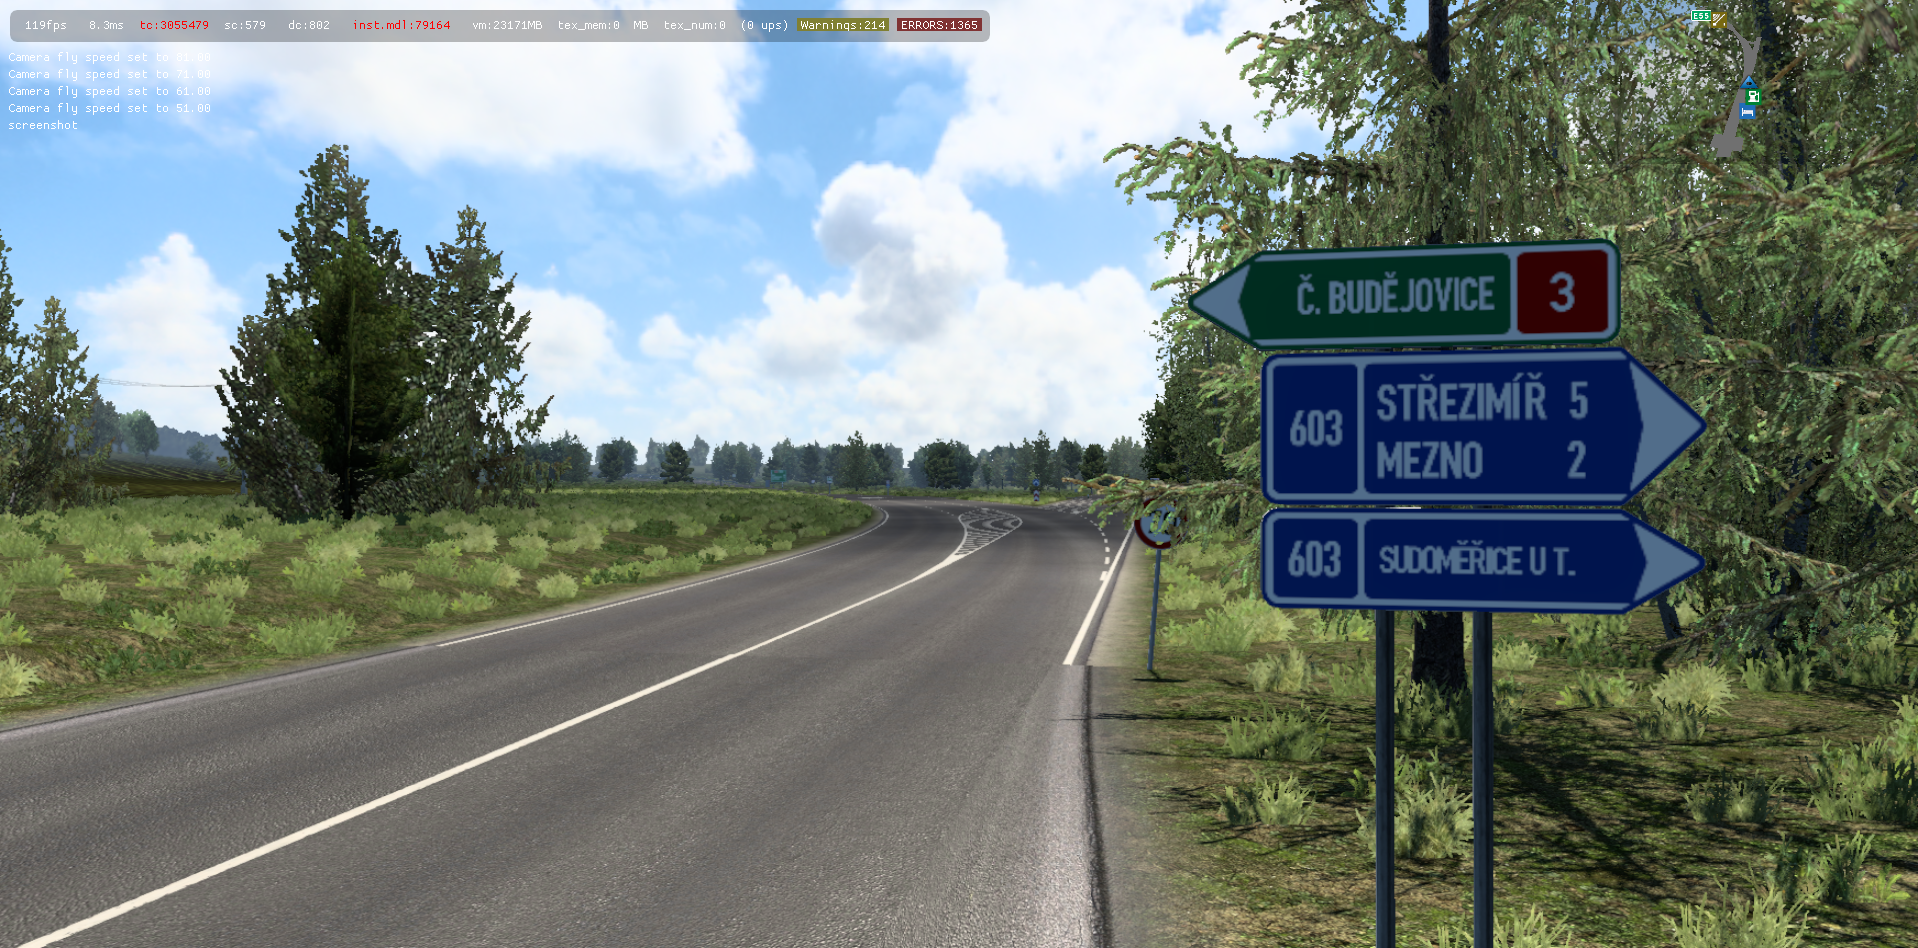 ets2_20210810_151505_00.png